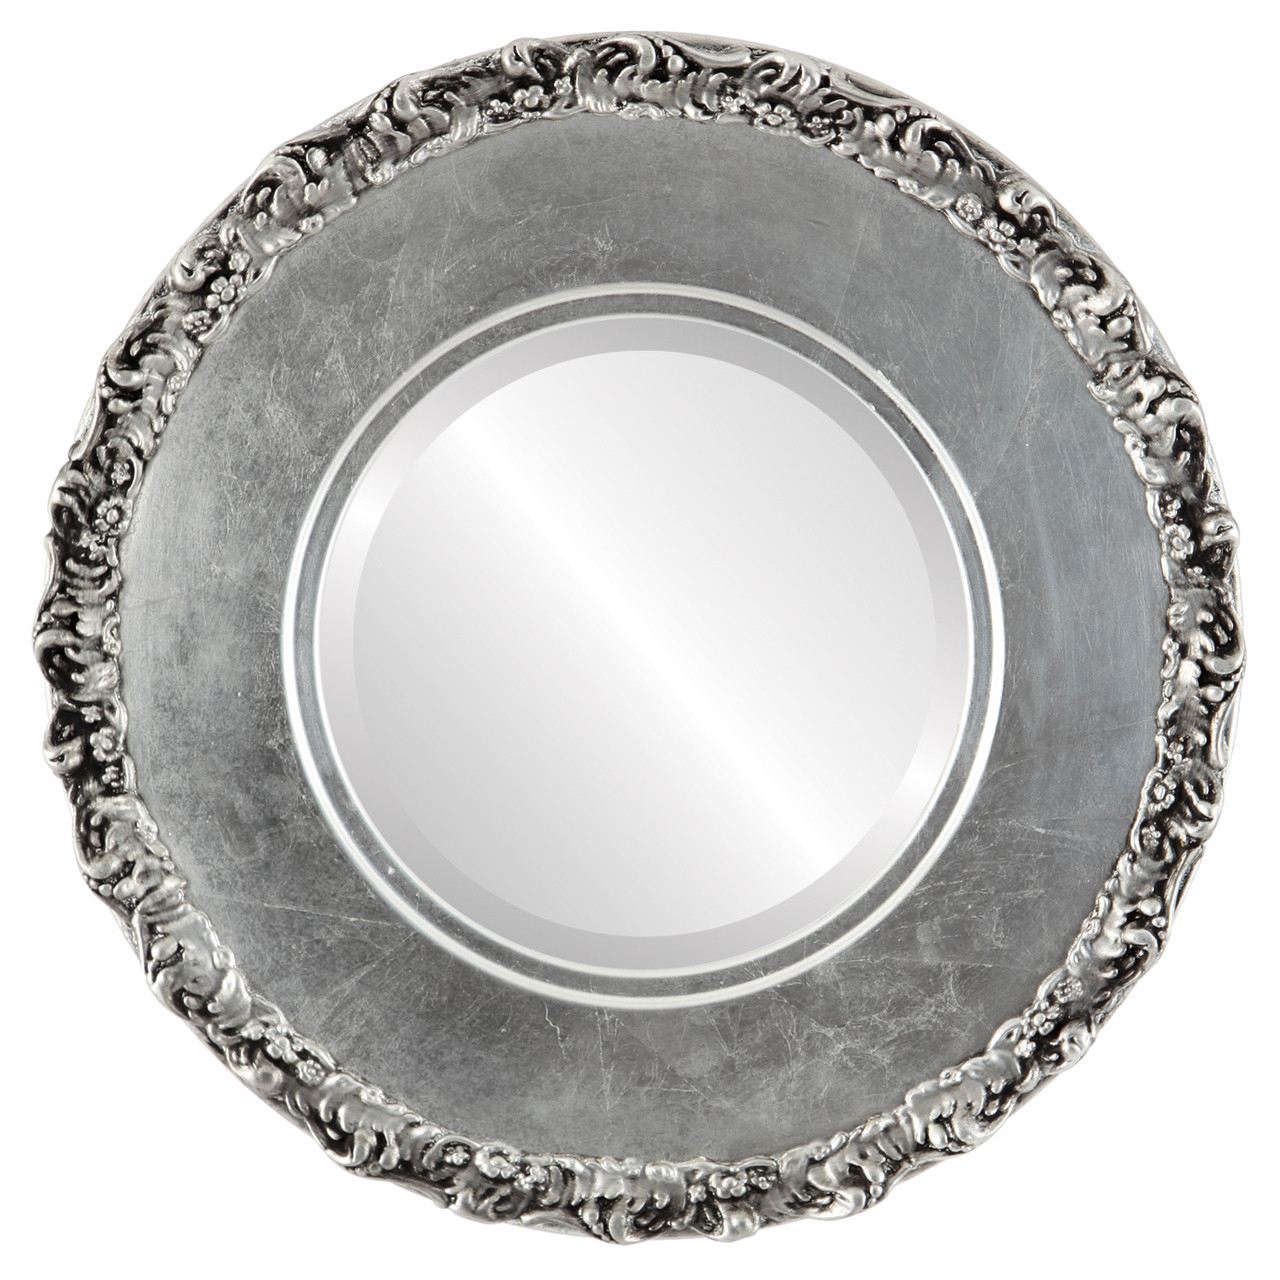 Antique silver round mirrors from 153 free shipping Round framed mirror